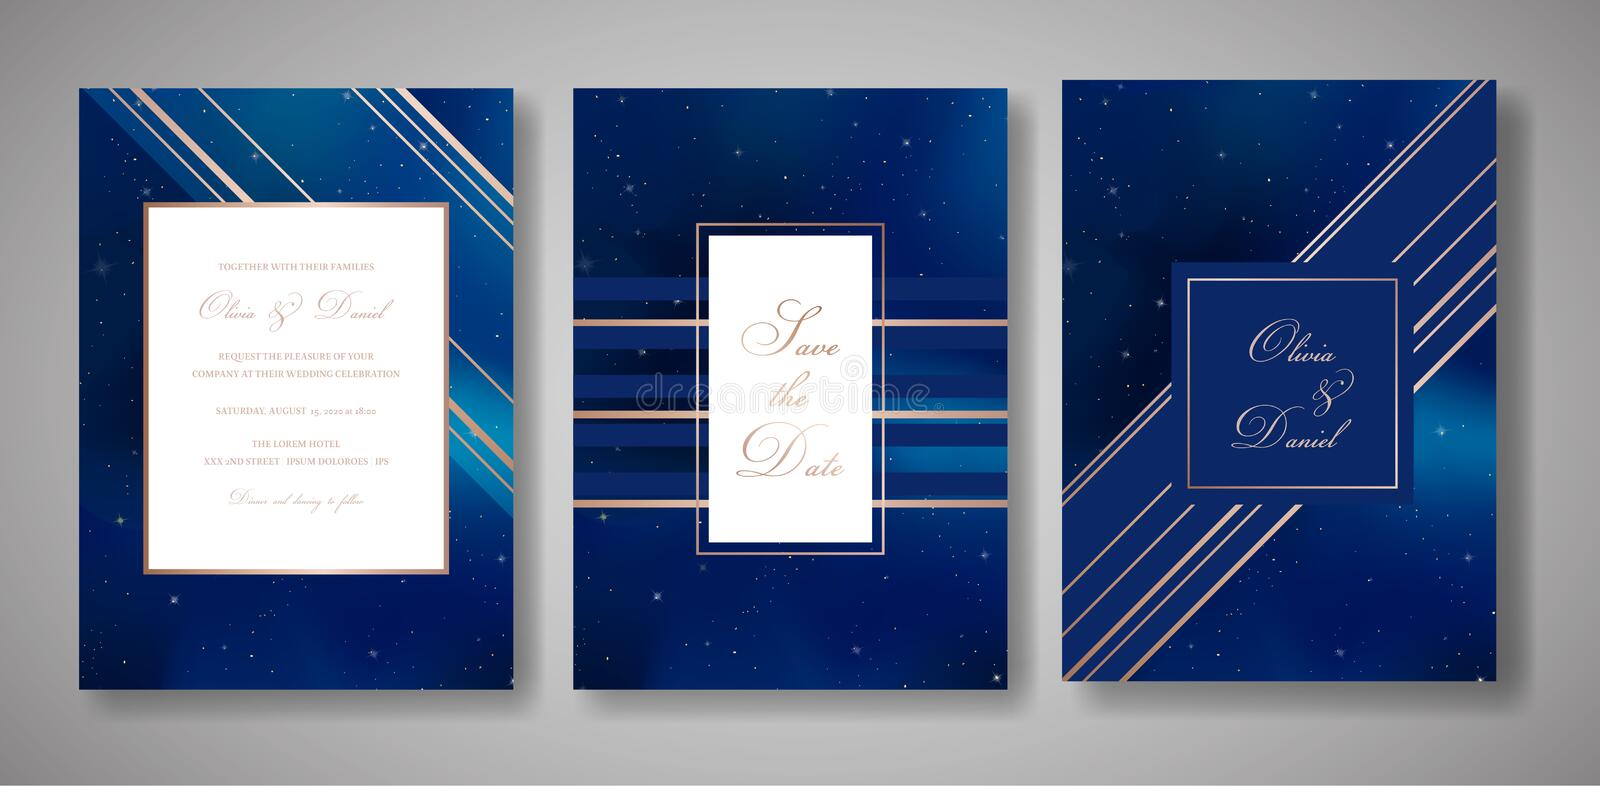 Starry Night Sky Trendy Wedding Invitation Card Set, Save the Date Celestial Template of Galaxy, Space, Stars vector illustration